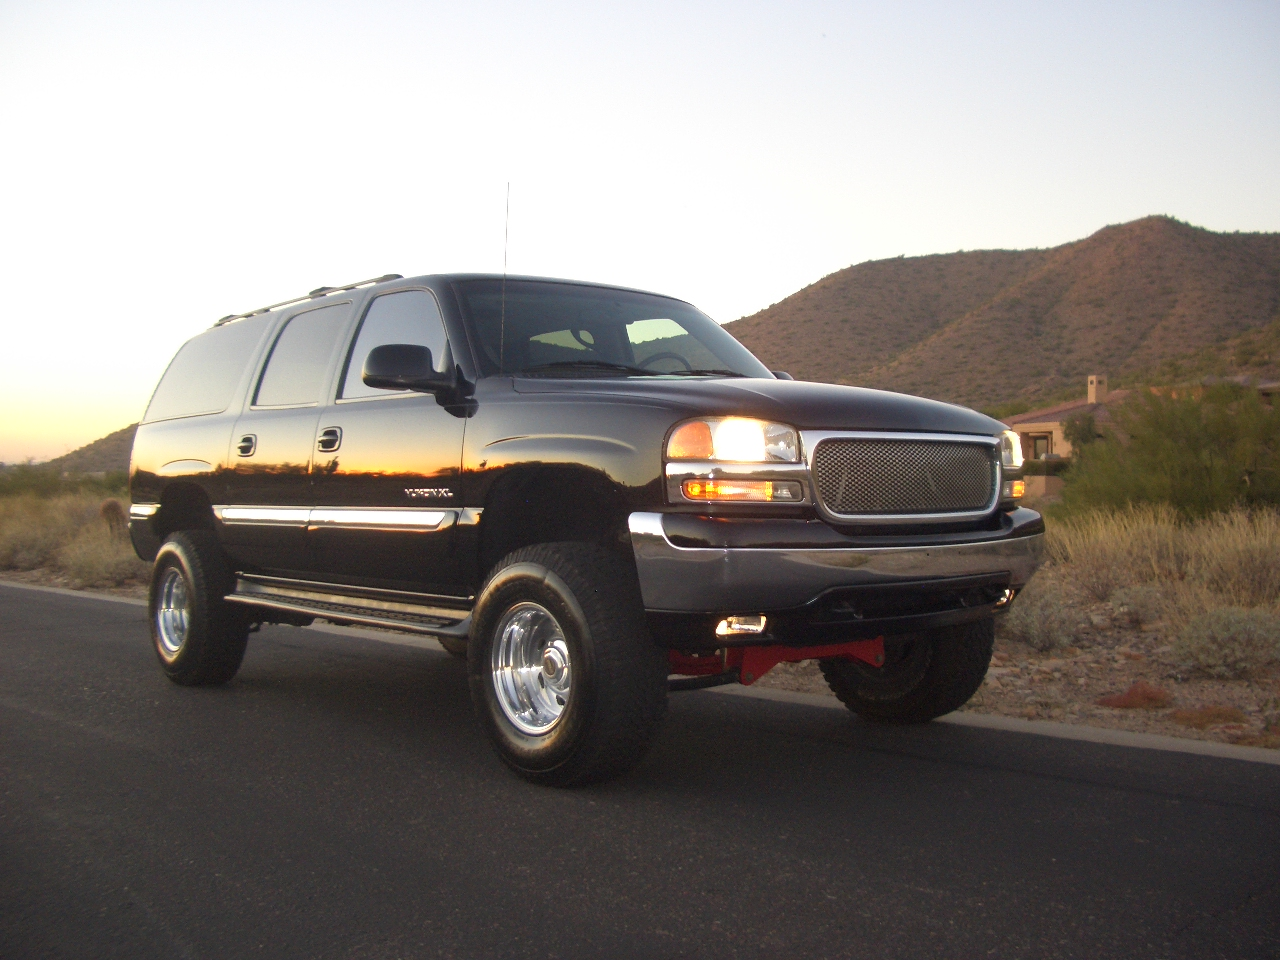 2000 GMC Yukon XL 4 Dr 1500 SLT 4WD SUV picture, exterior